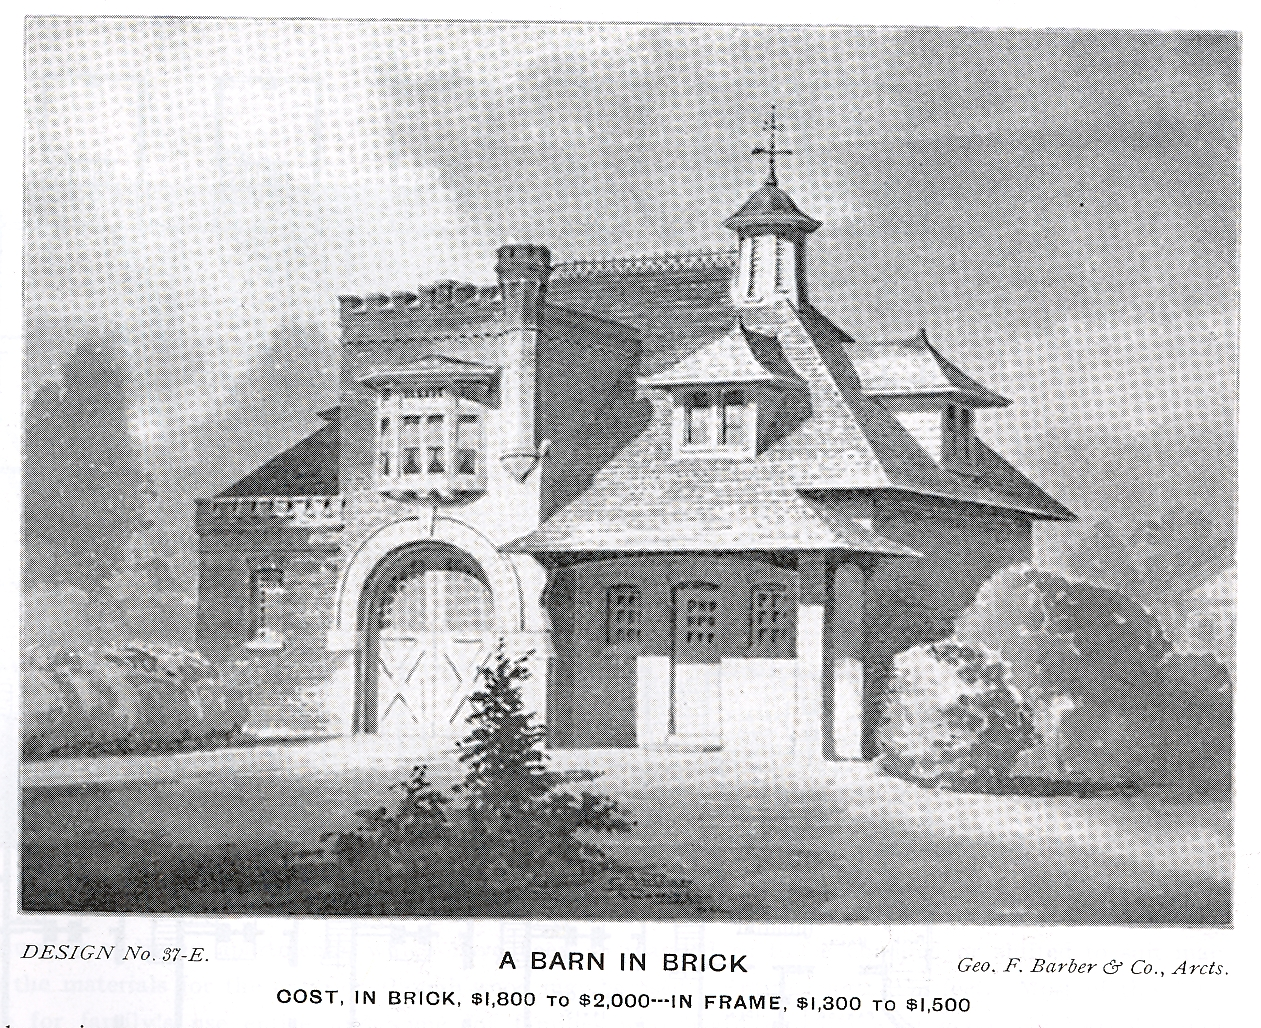 George F. Barber homes | on 19th century mansion house plans, 18 century victorian house plans, 1890 house plans, simple small house floor plans, queen anne victorian house plans, 1952 house plans,